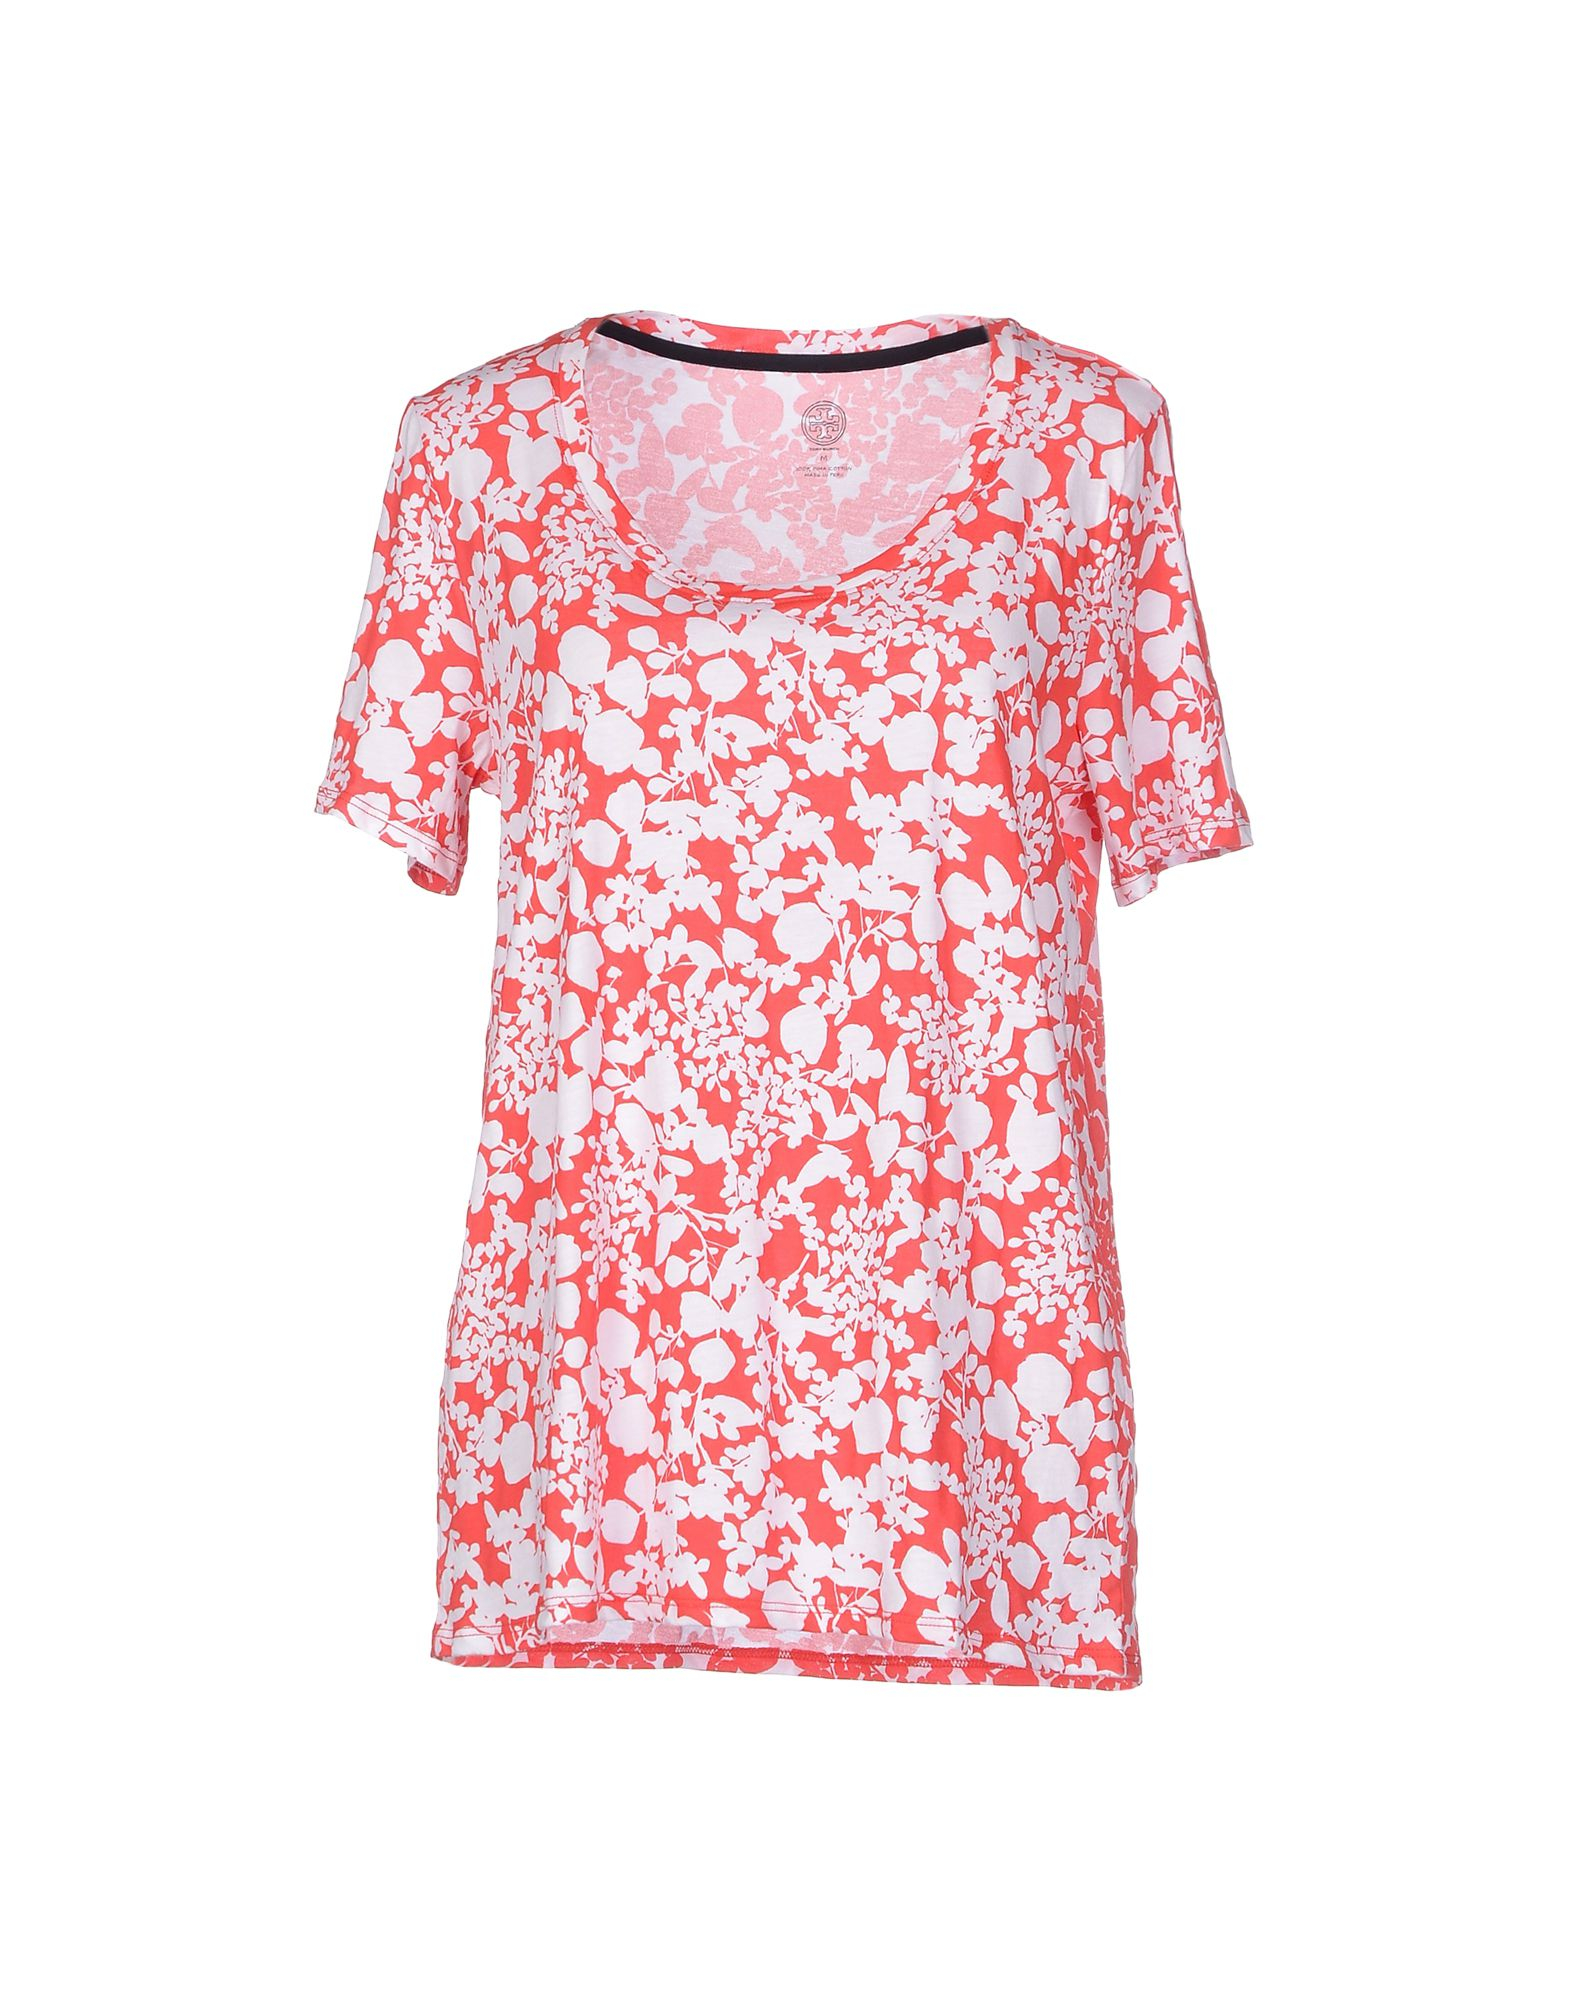 Tory burch t shirt in red lyst for Tory burch t shirt